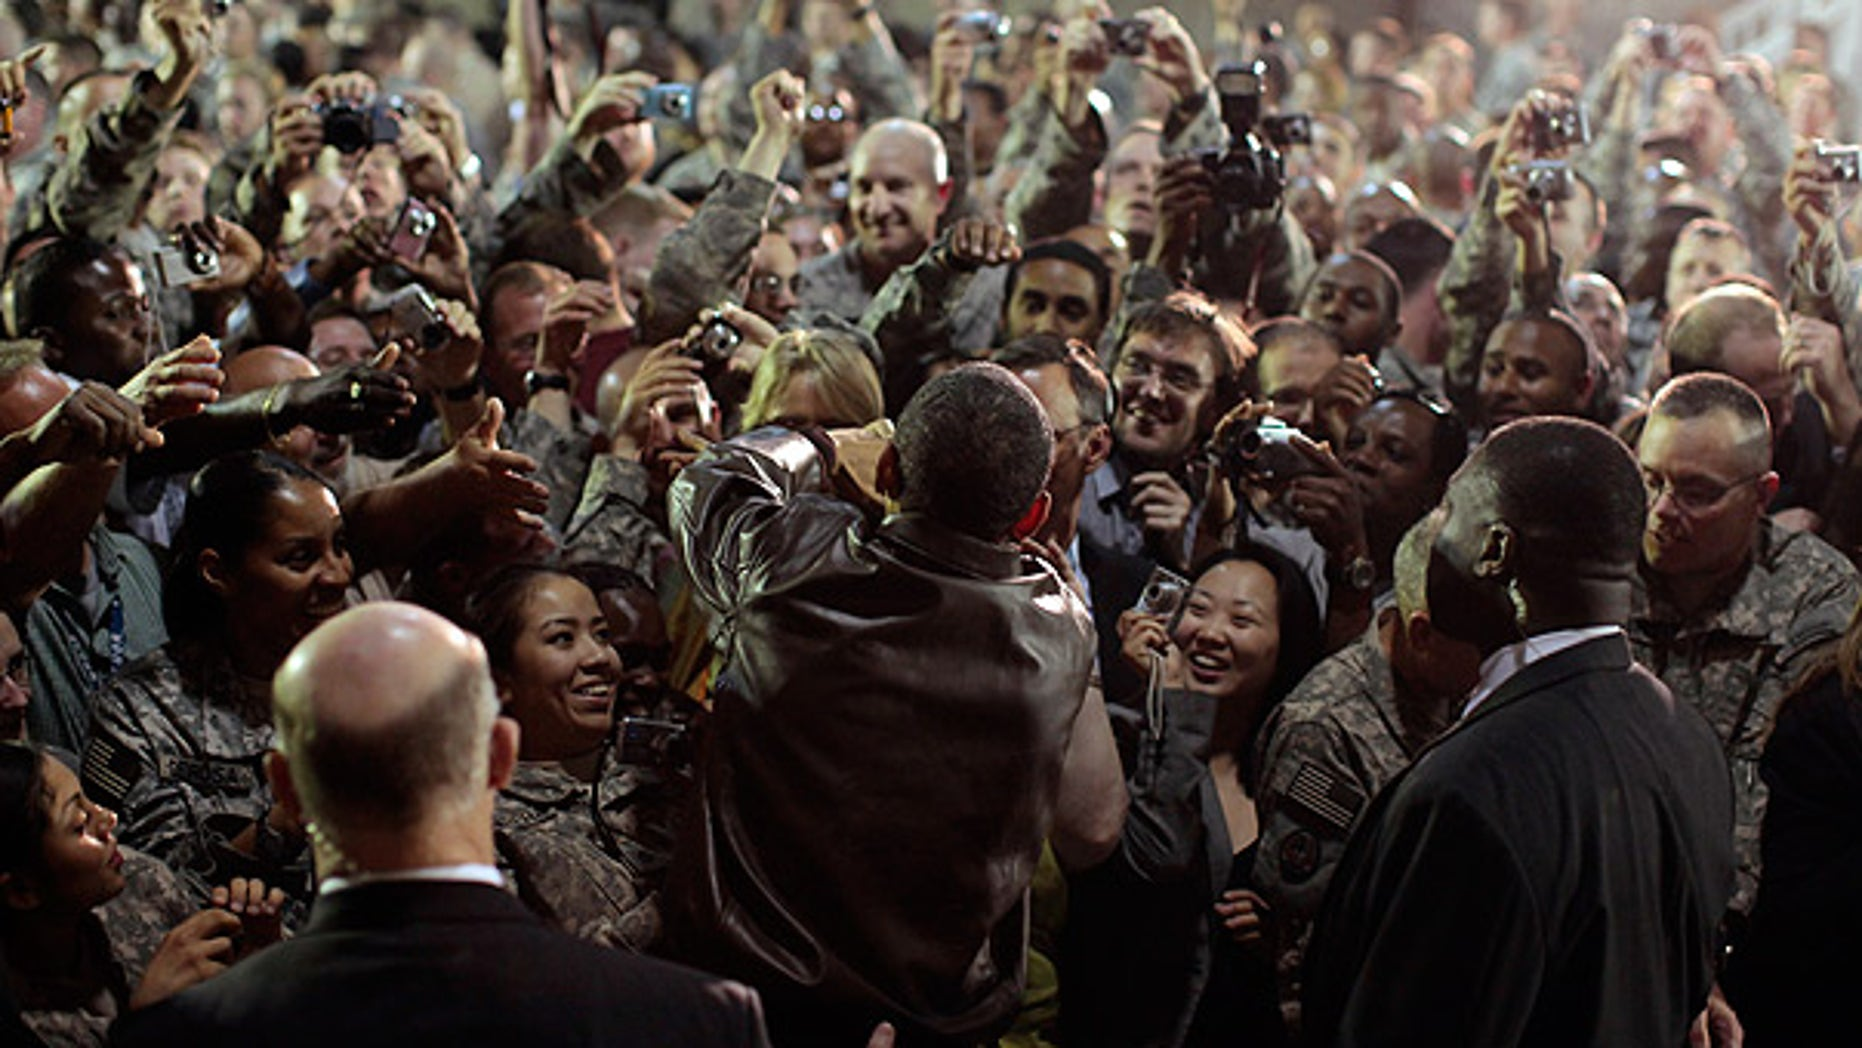 Mar. 28: President Obama rallies troops and military personnel at Bagram Air Base in Afghanistan.